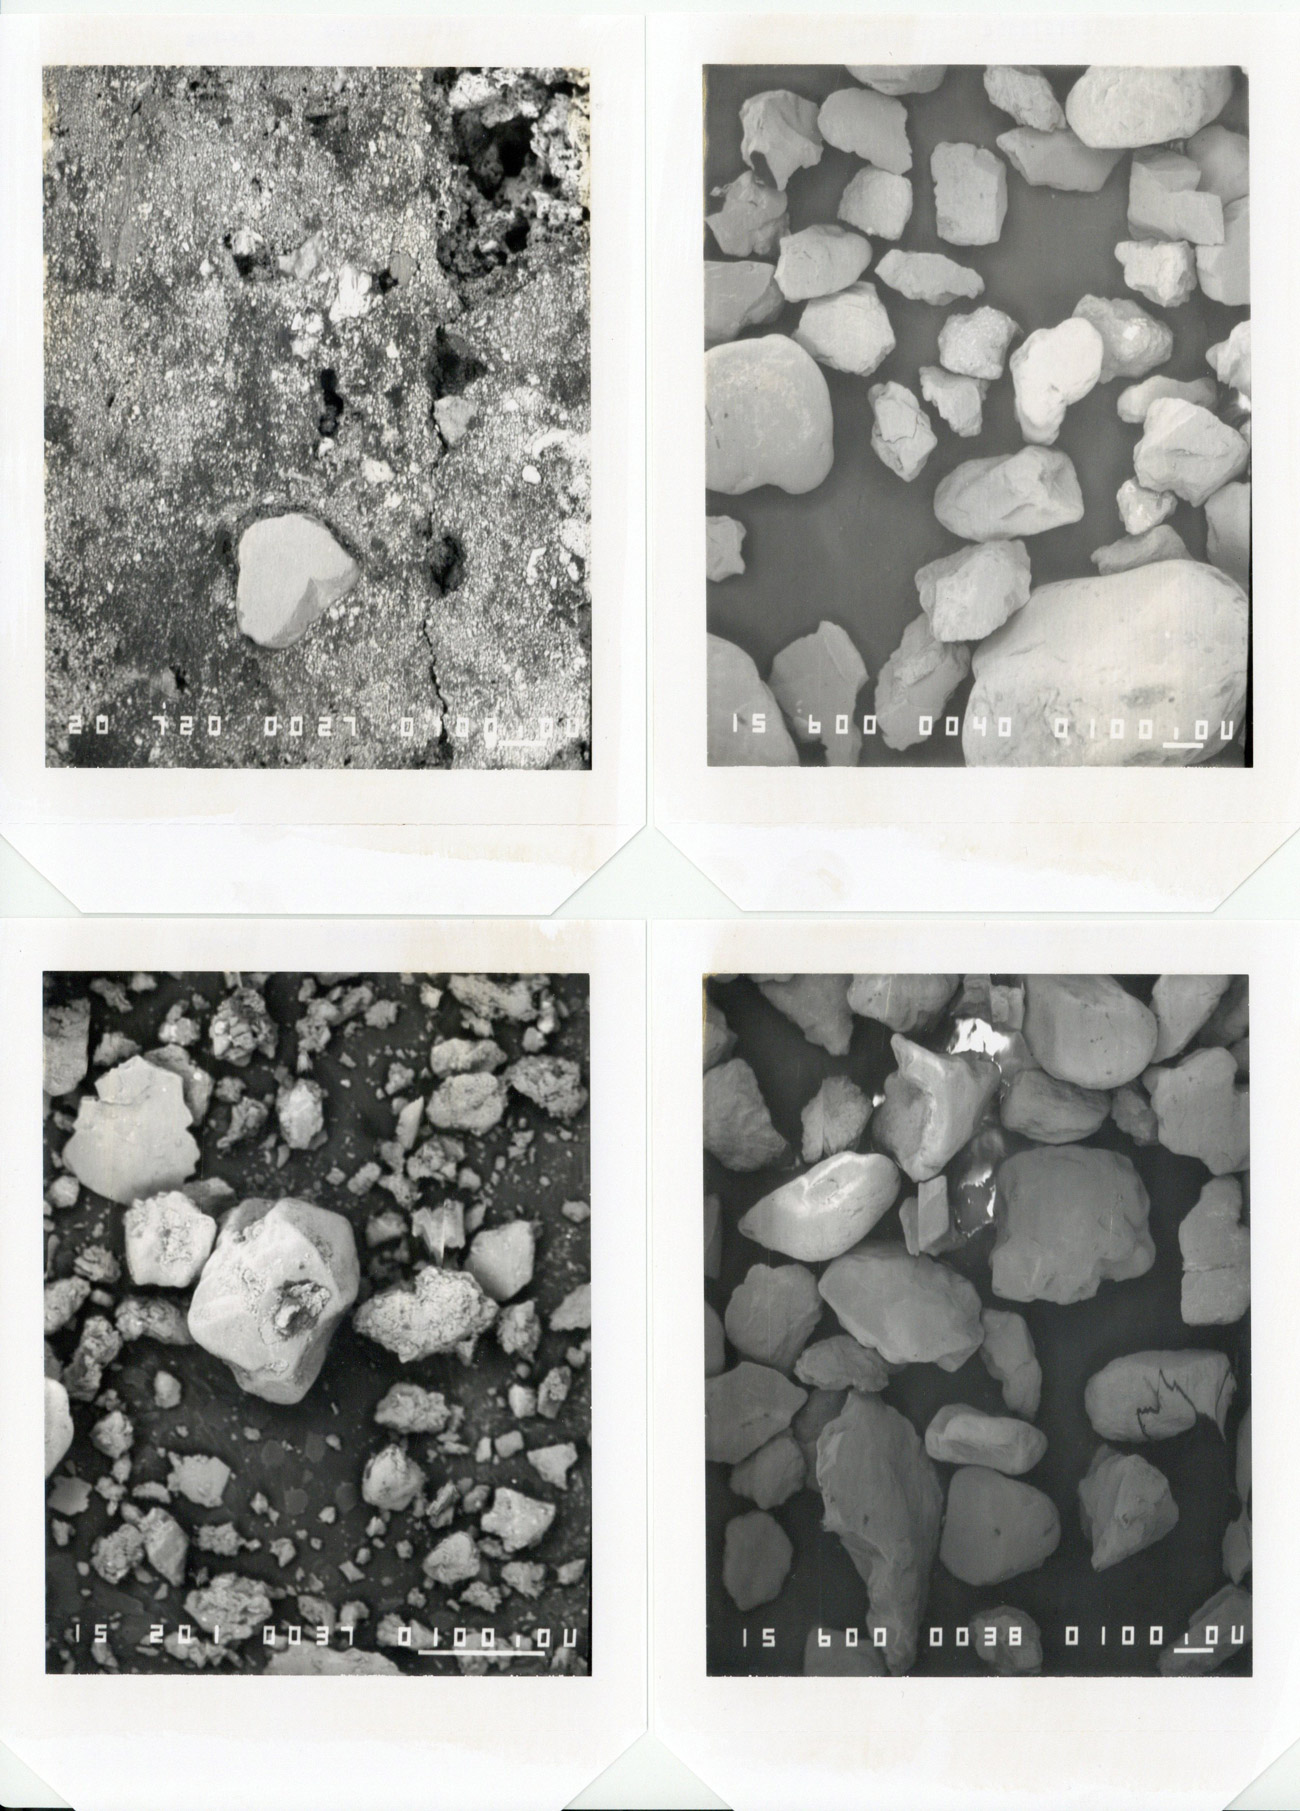 Four black and white photos appear to show rocks and dirt, each with white numbers across the bottom.